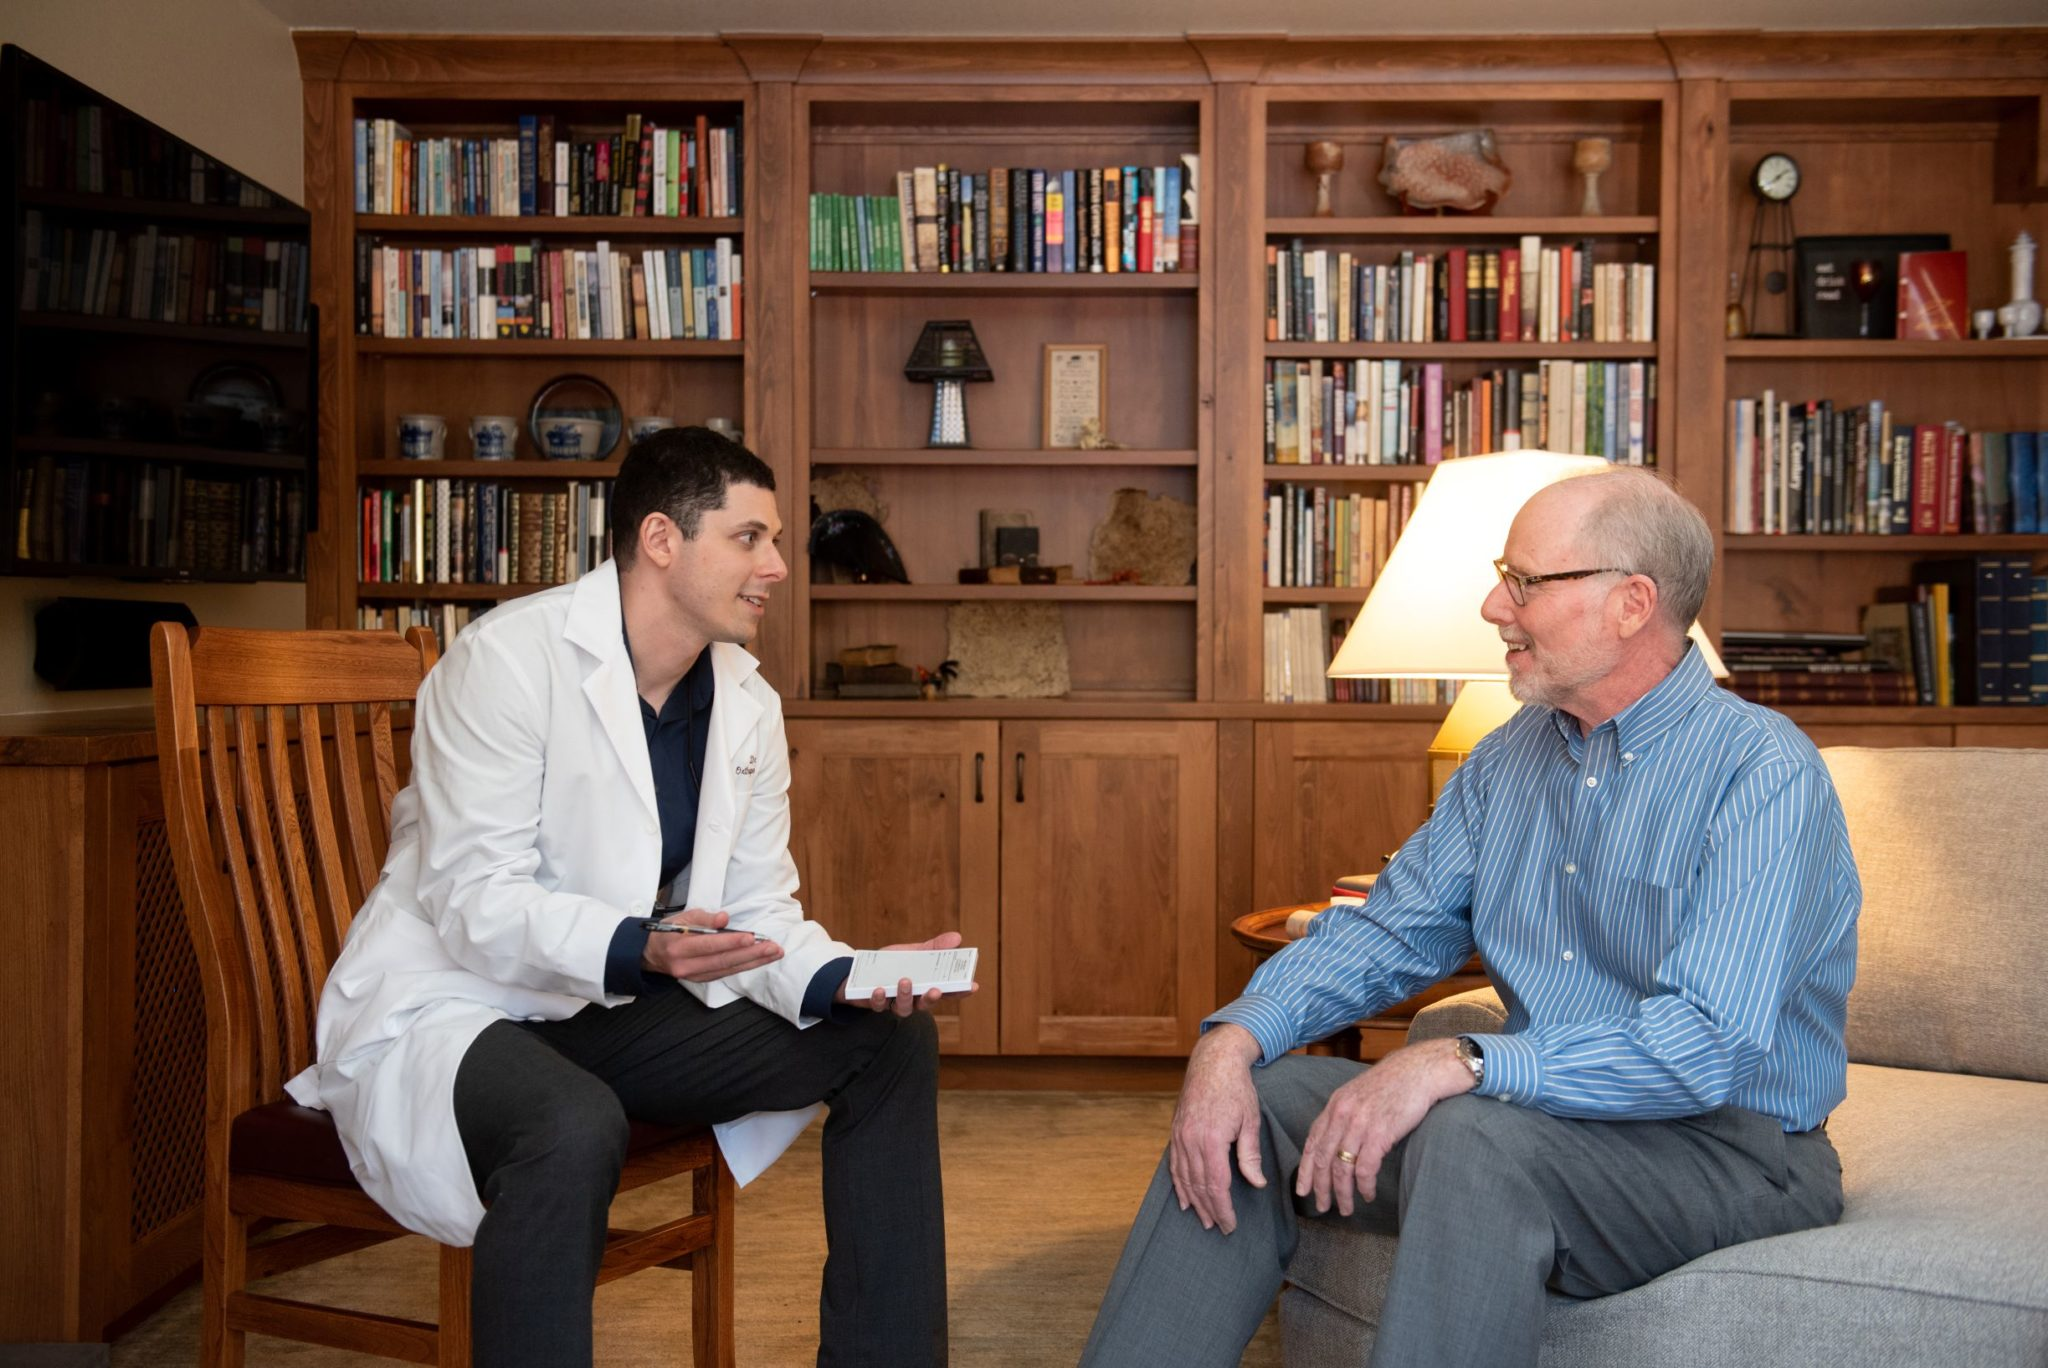 Colorado Springs Orthopedic Surgeon House Calls With Patient